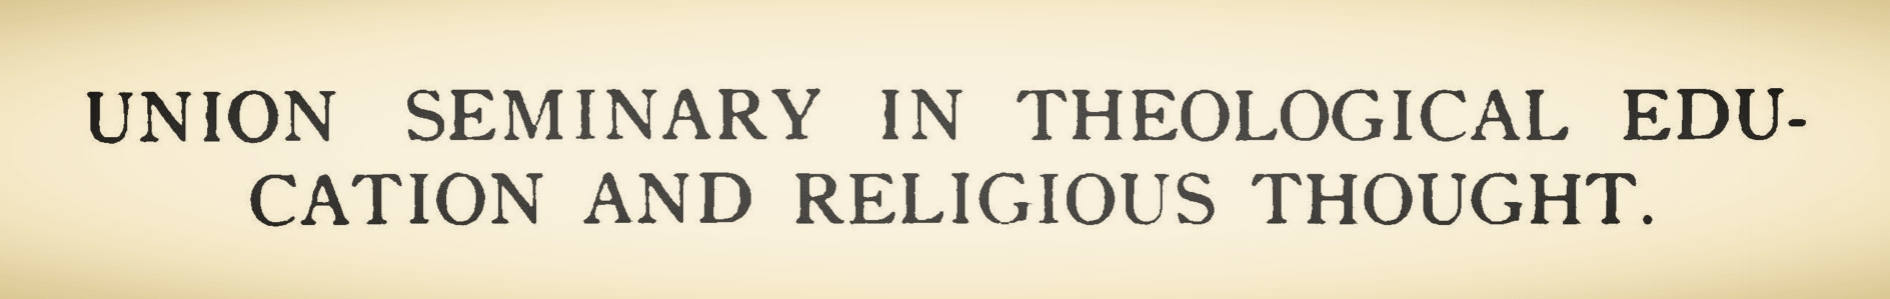 Rice, Jr., Theron Hall, Union Seminary in Theological Education and Religious Thought Title Page.jpg